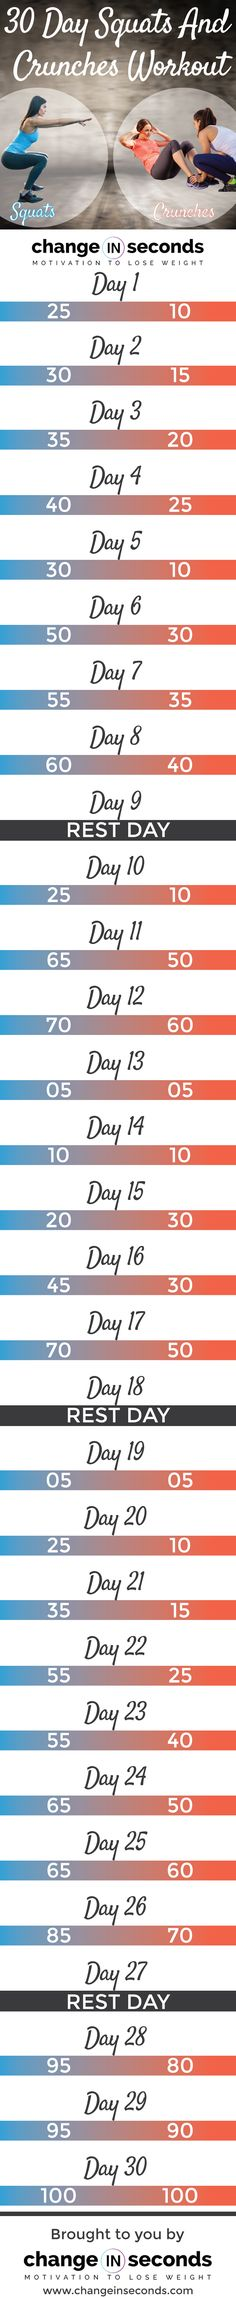 30 Day Squats And Crunches Workout (Download PDF)